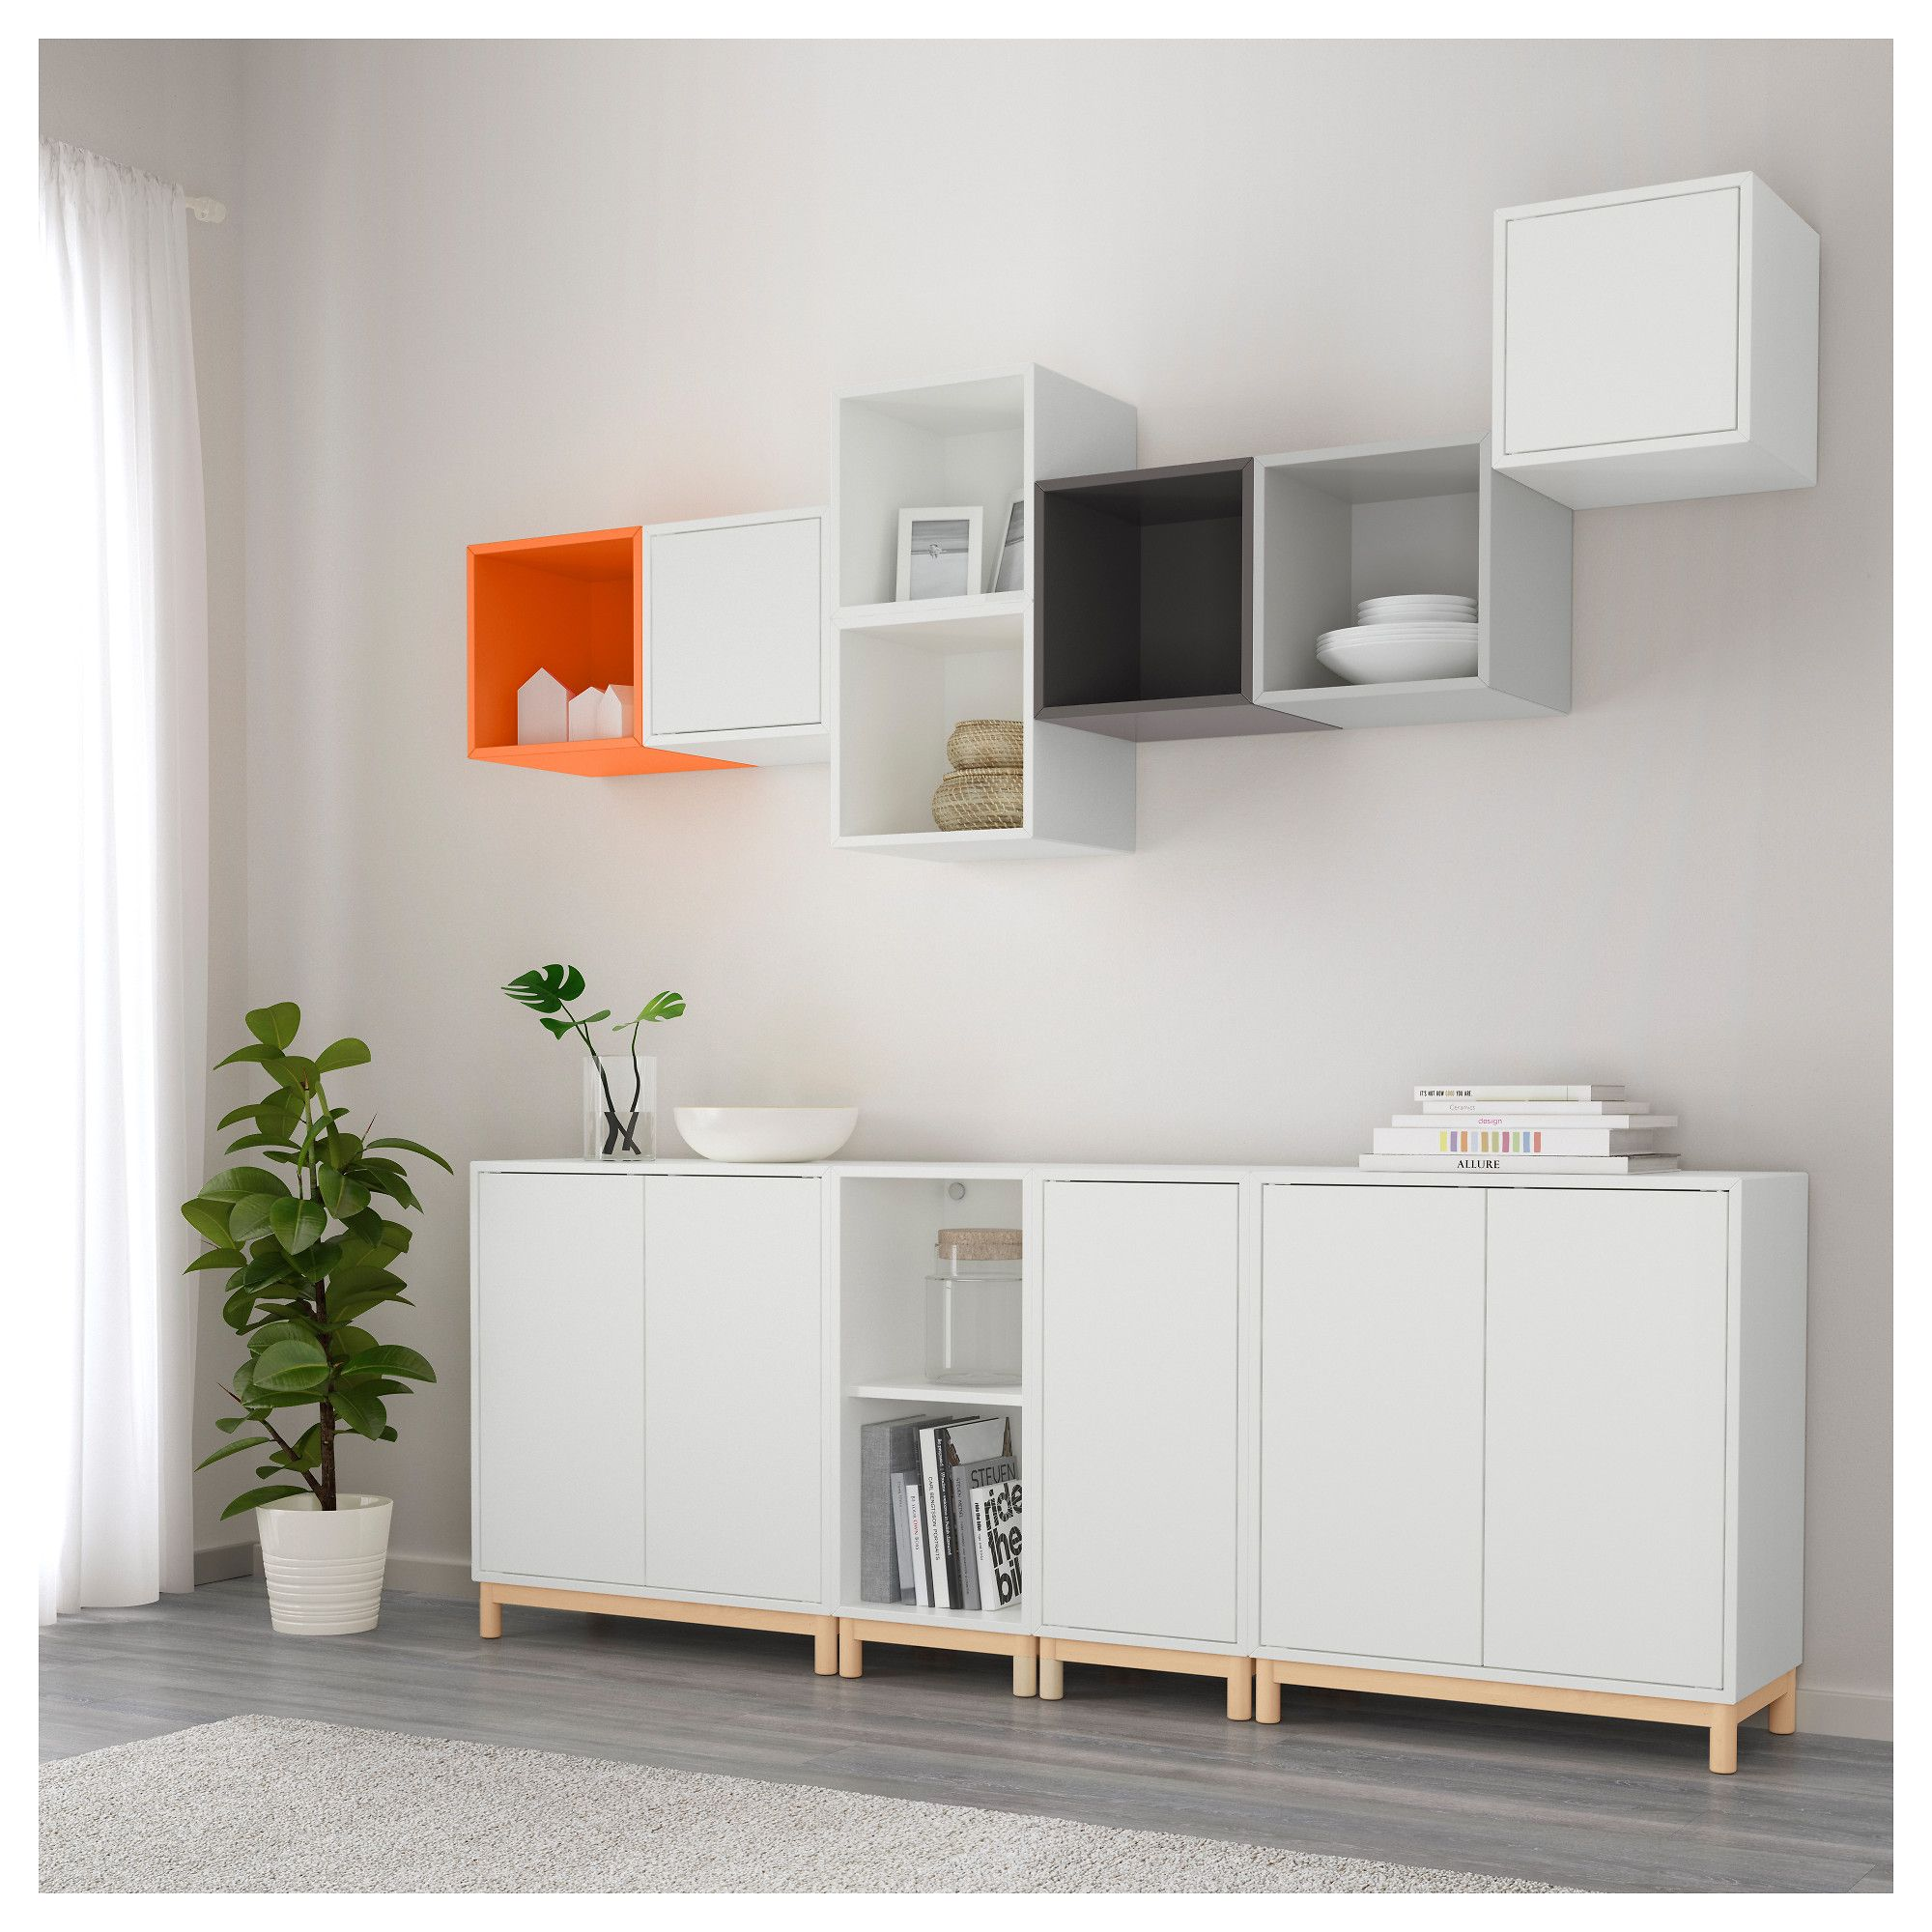 Living Room Furniture Ikea: Furniture And Home Furnishings In 2019